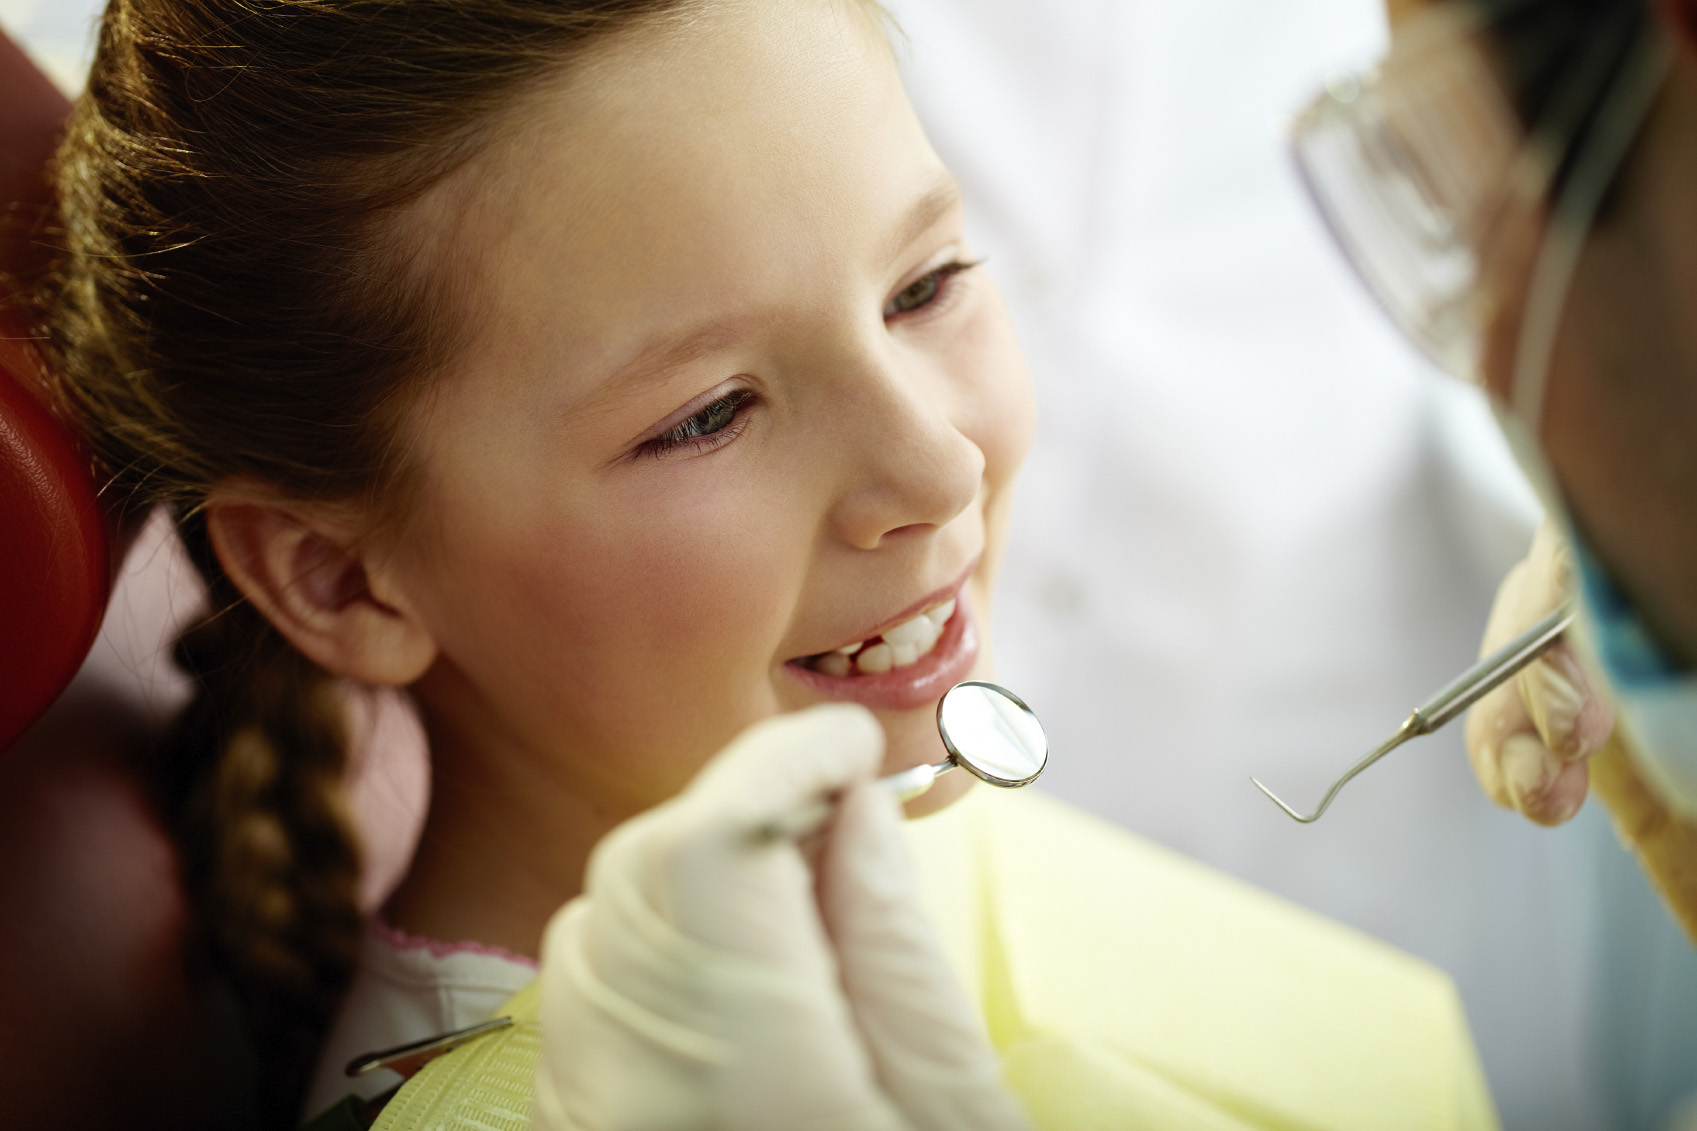 Kids Only Dental Moves To New Location in Forest Hills, Adds Orthodontics Practice